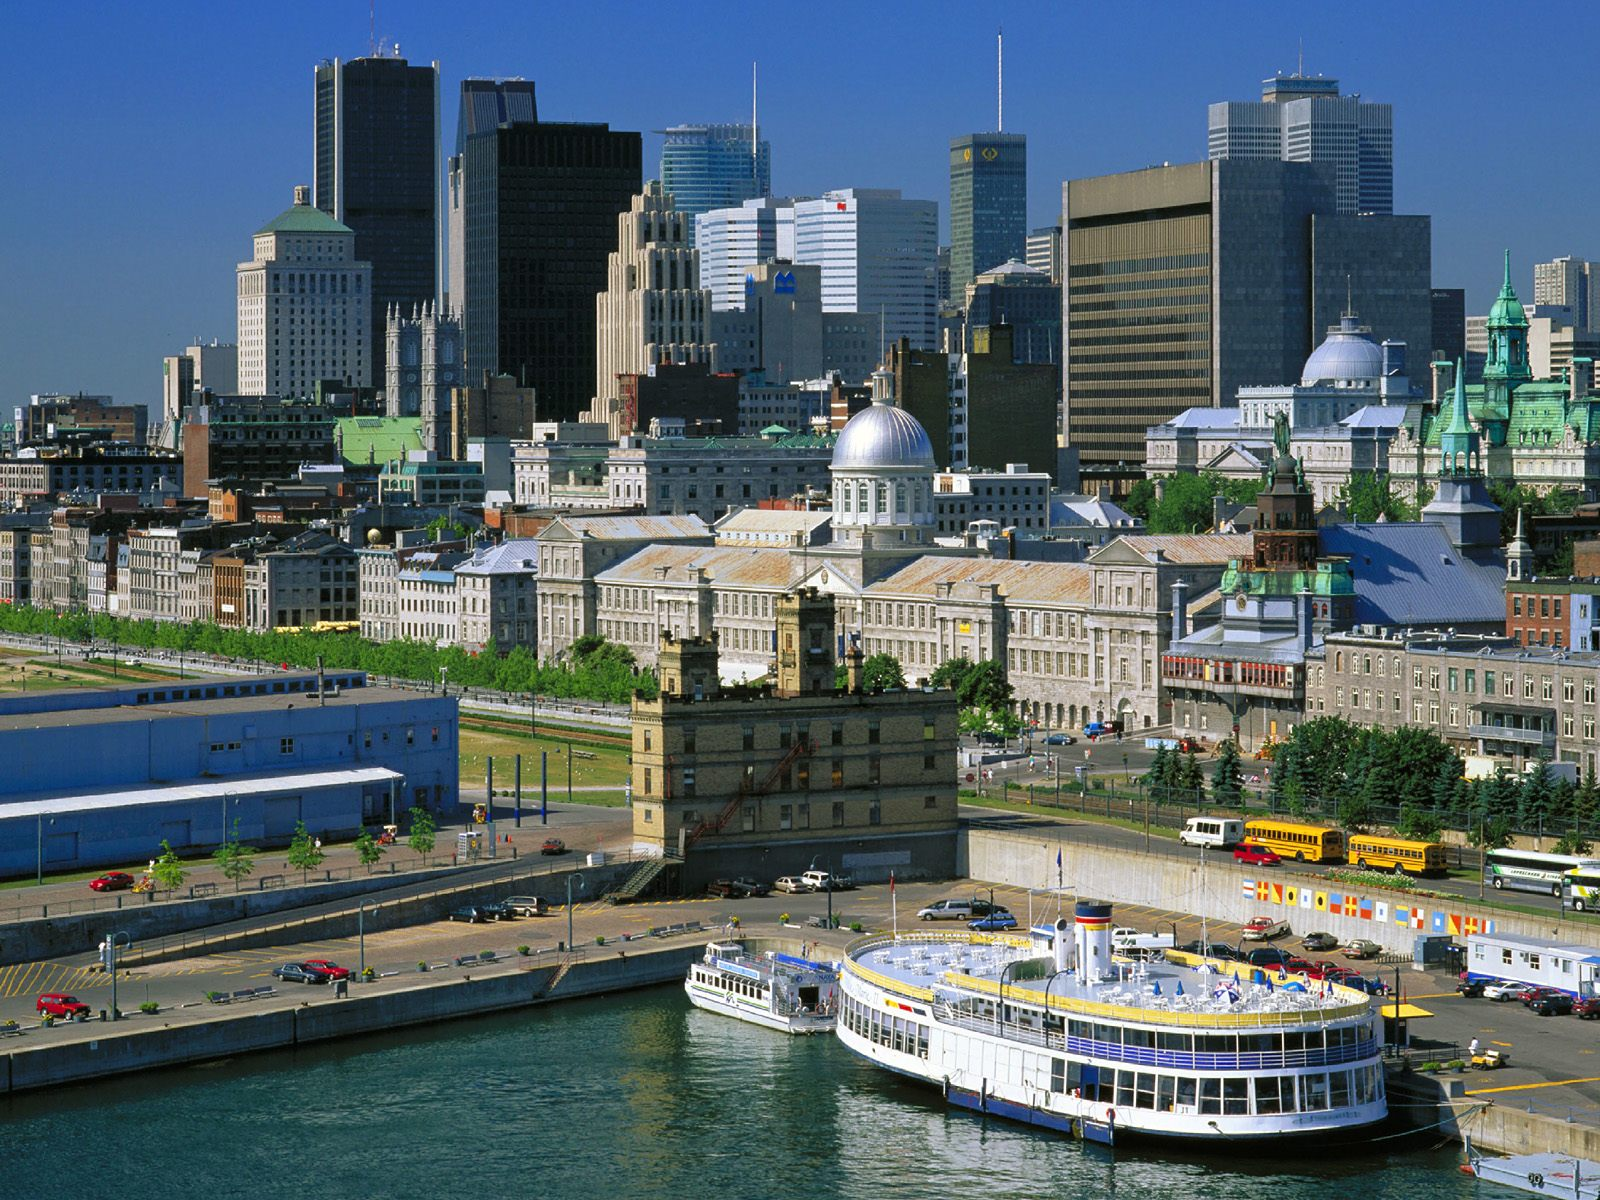 Old Montreal Montreal The Canadian City And More To Explore